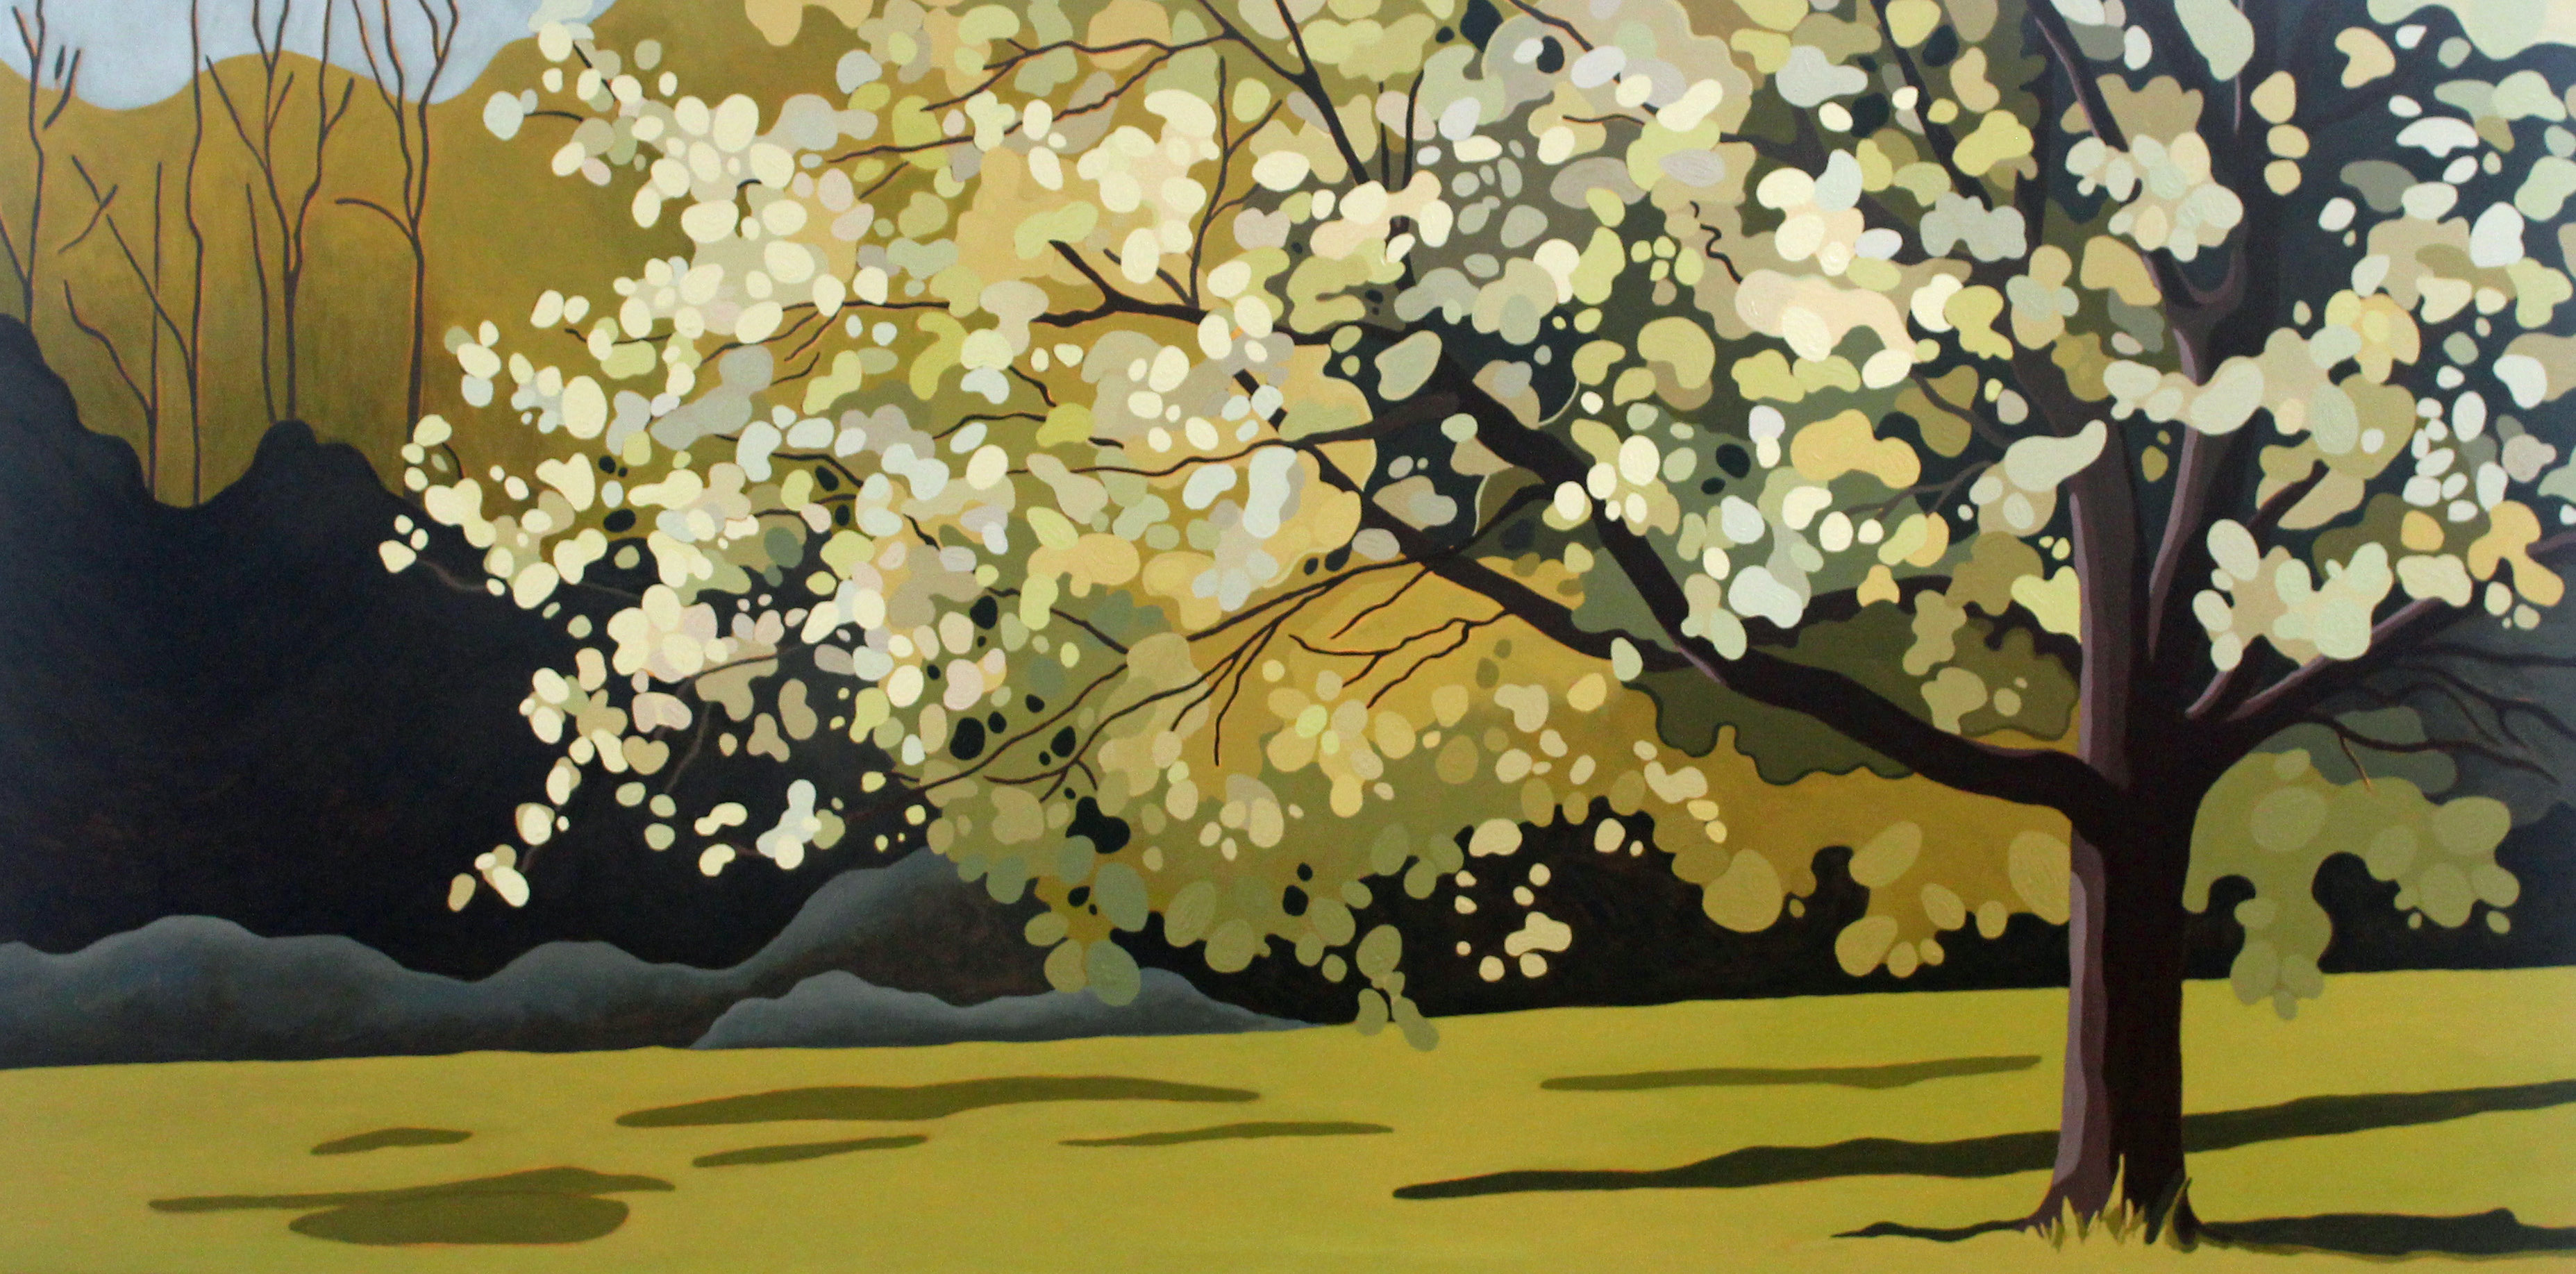 Crabapple in Spring, 2021, 48 x 24, Acrylic on Canvas